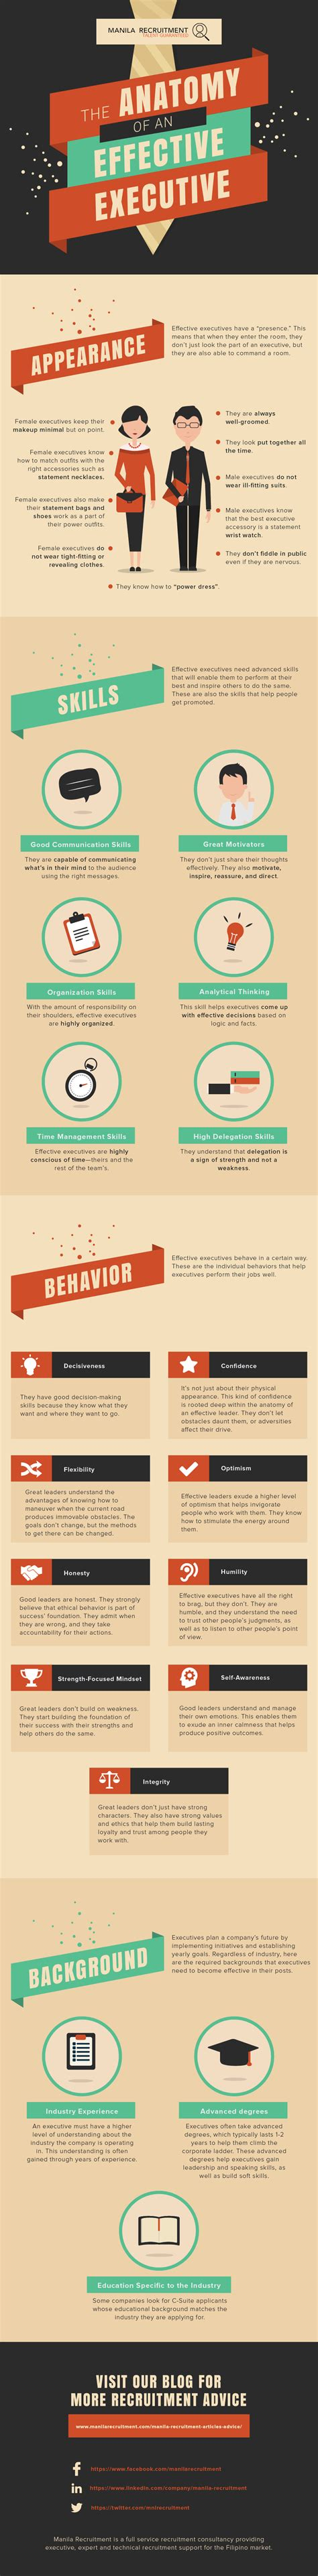 Help Search For Executive The Anatomy Of An Effective Executive Infographic Valuewalk